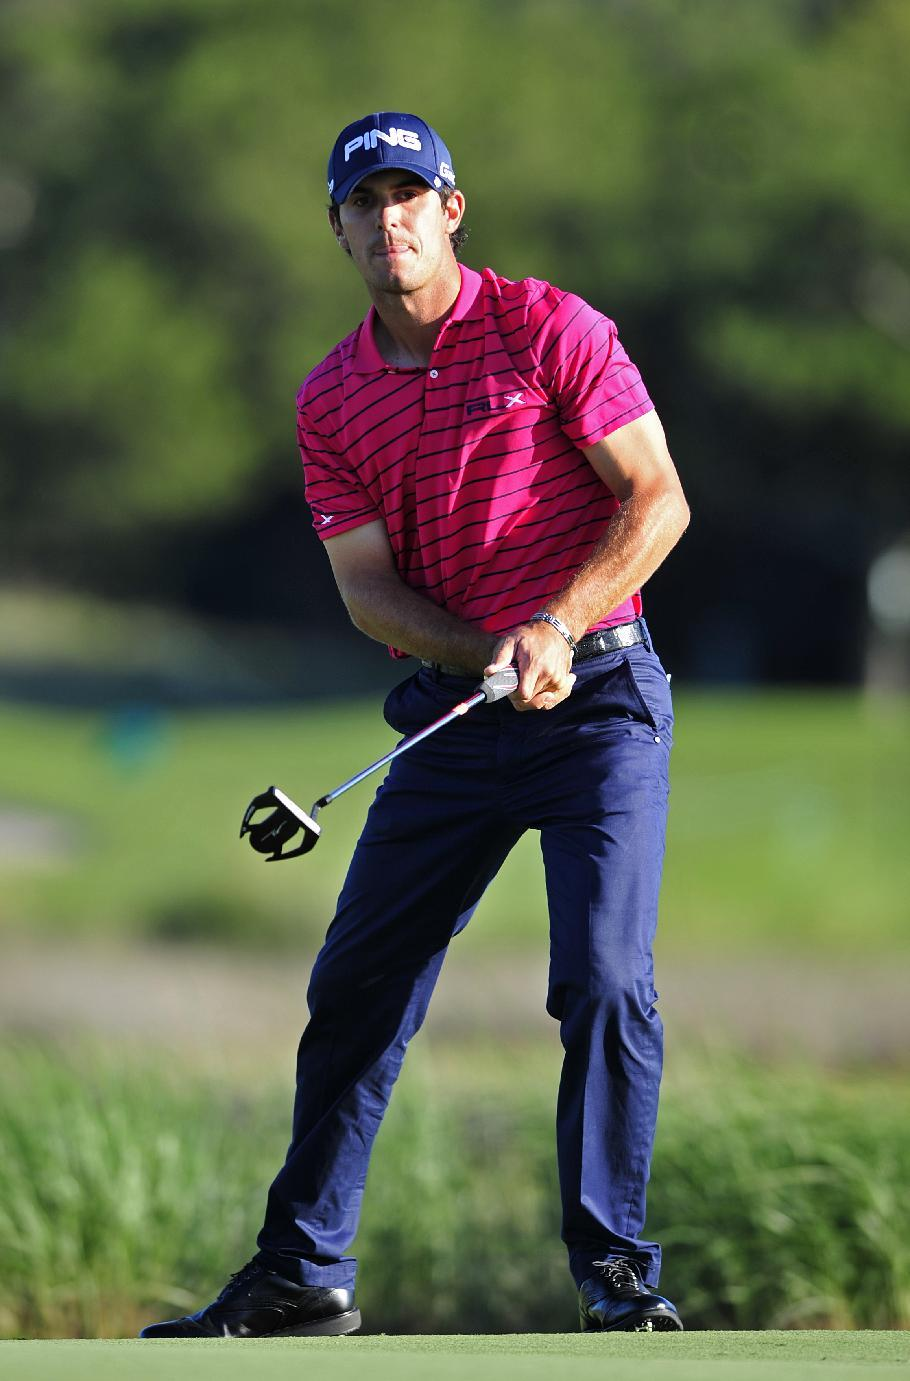 Billy Horschel watches putt on the 13th green during the second round of the McGladrey Classic golf tournament at the Sea Island Golf Club on St. Simons Island, Ga., Friday, Oct. 14, 2011. (AP Photo/Stephen Morton)